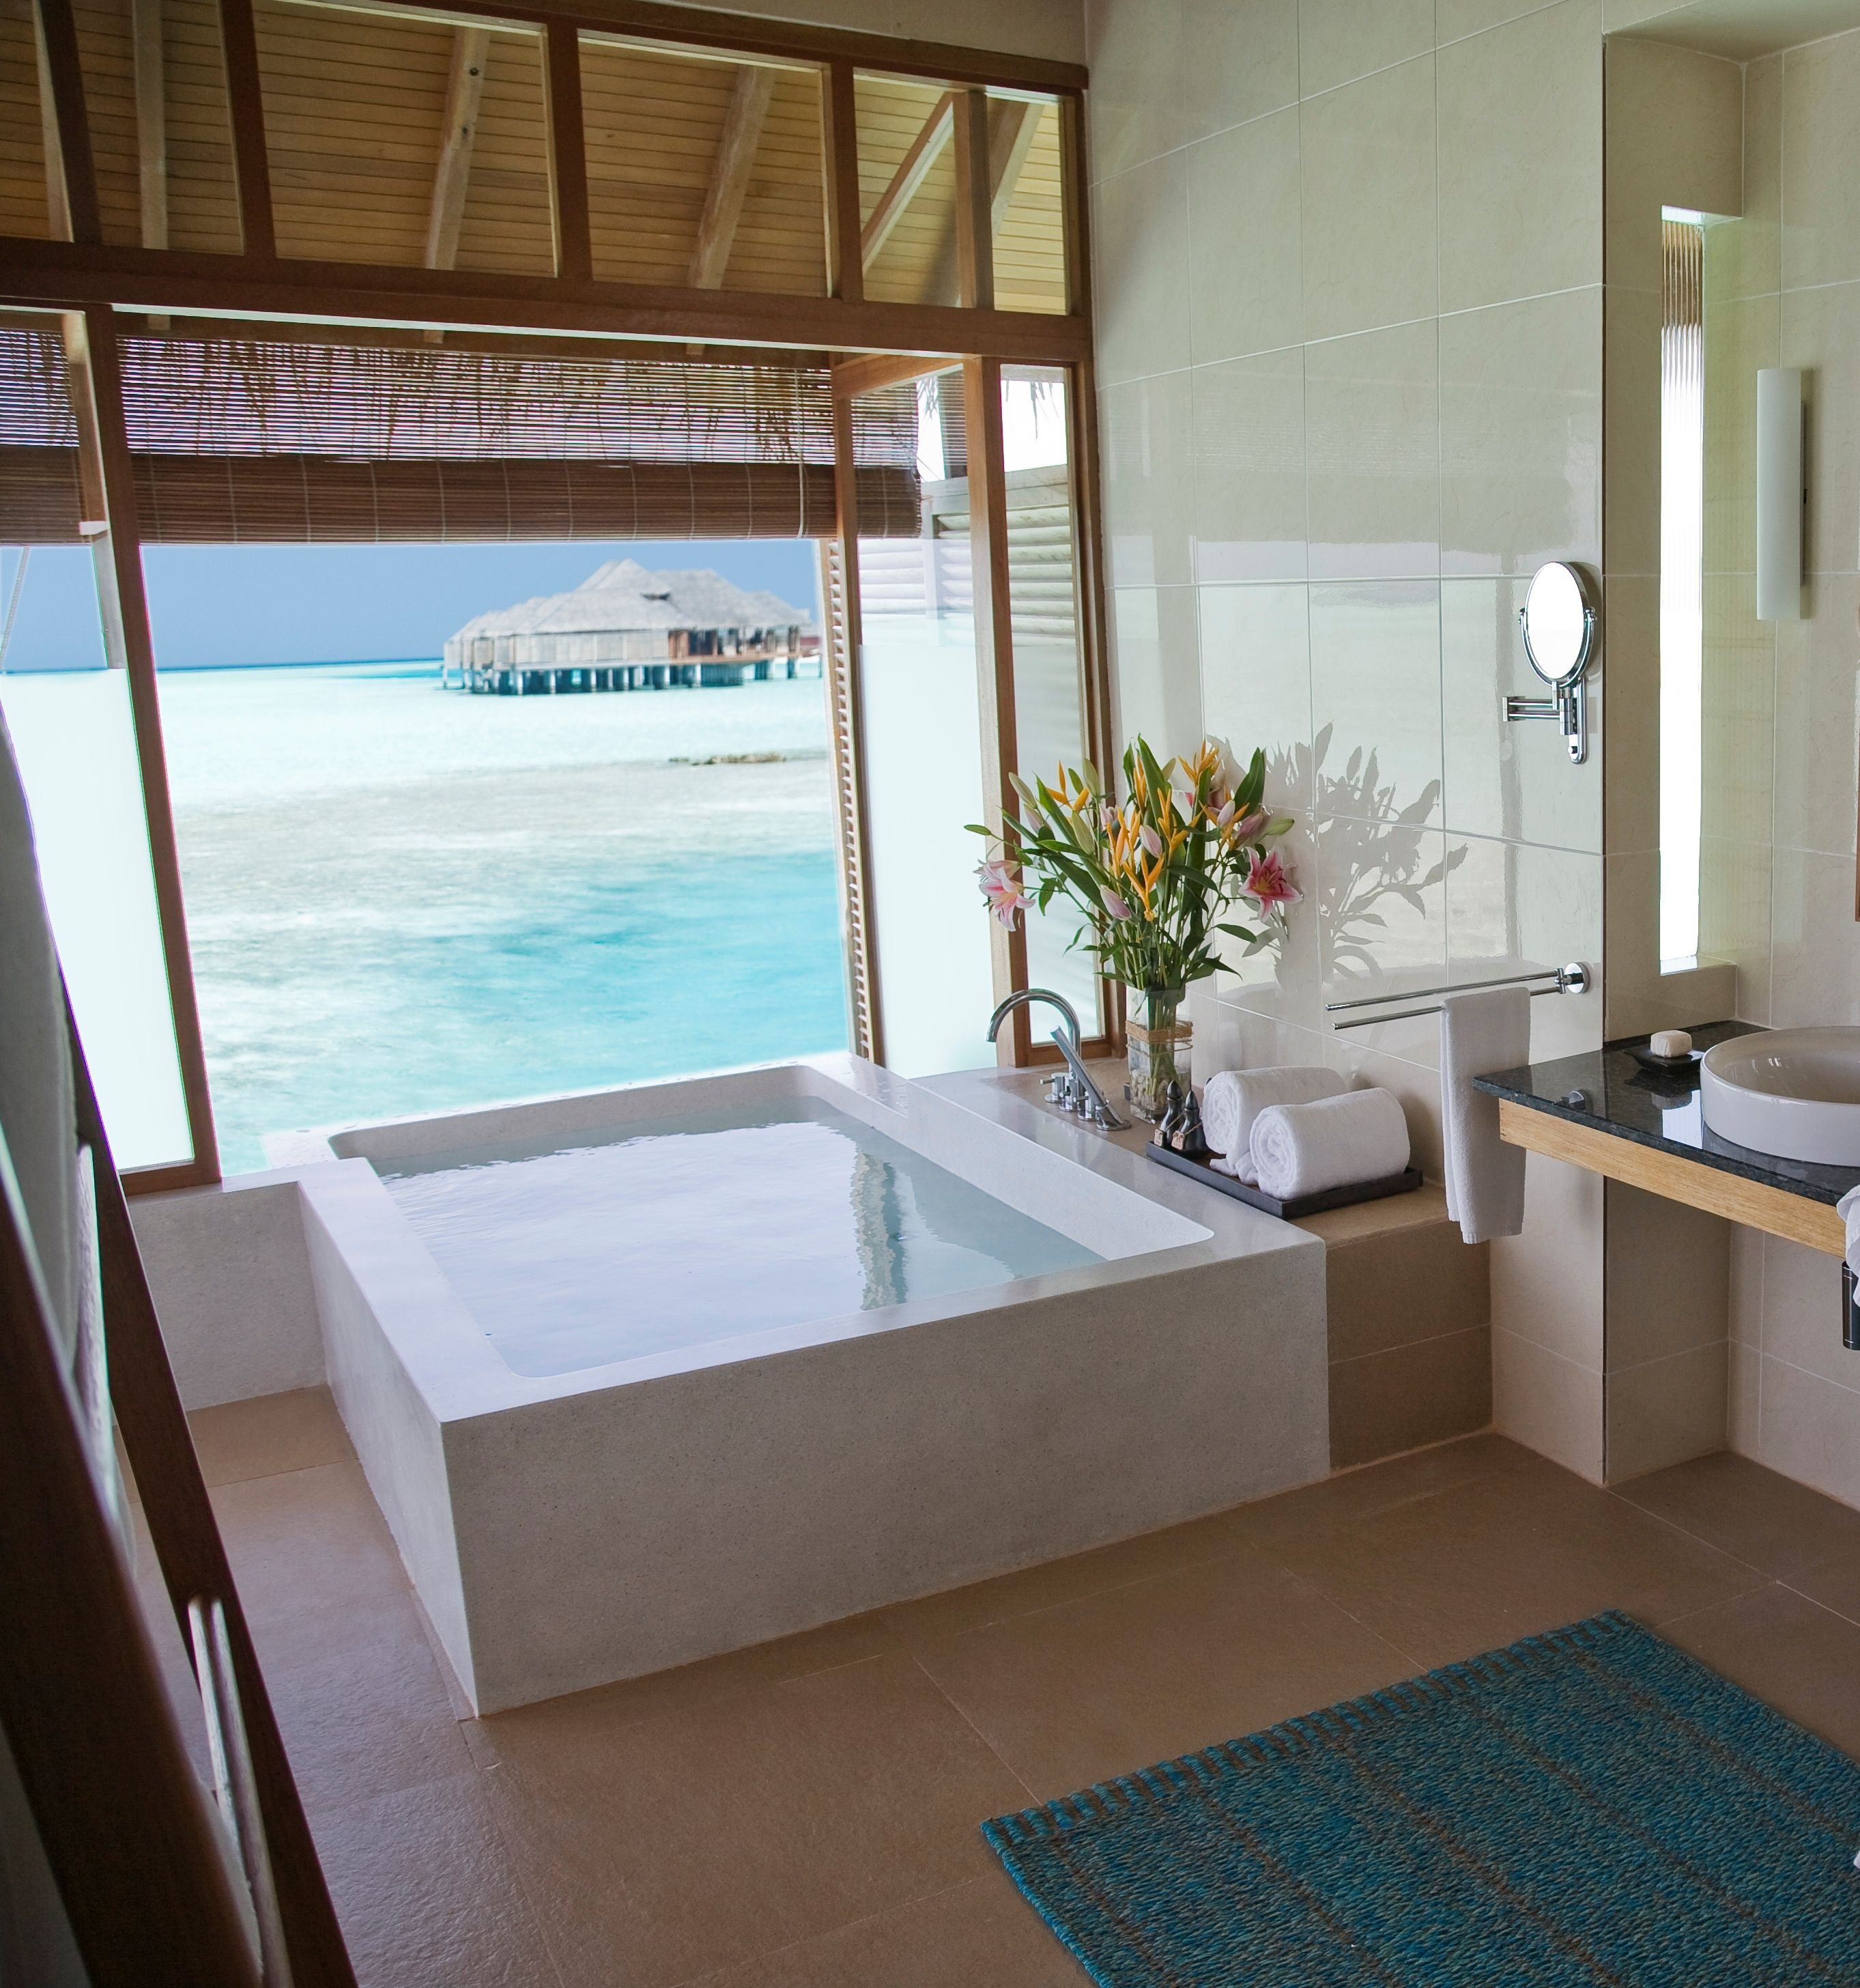 View Bathroom Designs Amazing Sea View Bathroom Design In Our Over Water Bungalow At